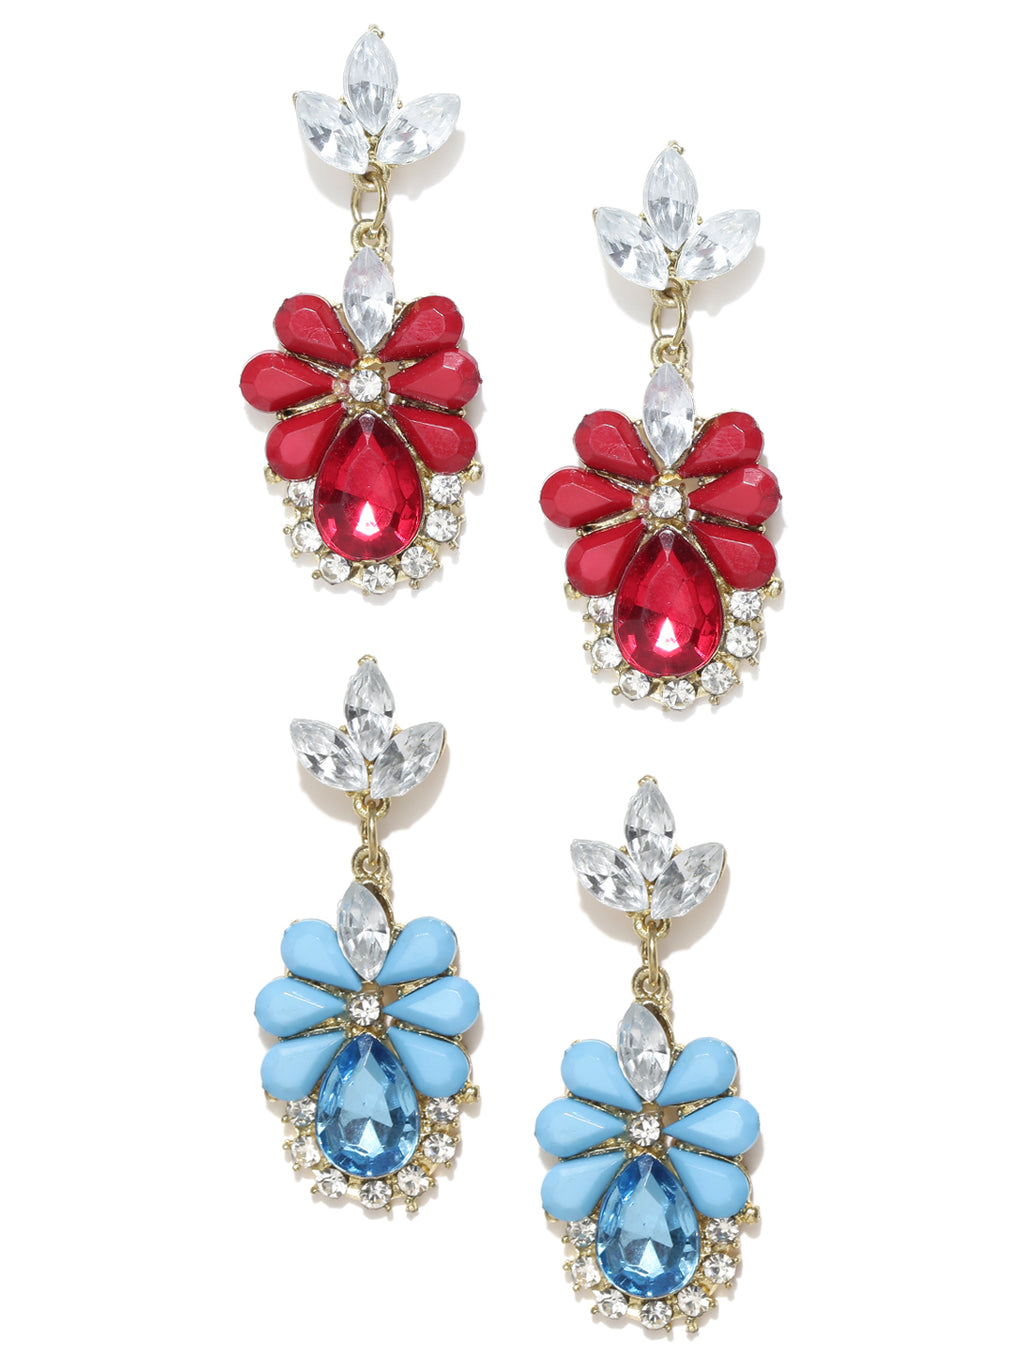 Blueberry set of 2 stone studded drop earrings